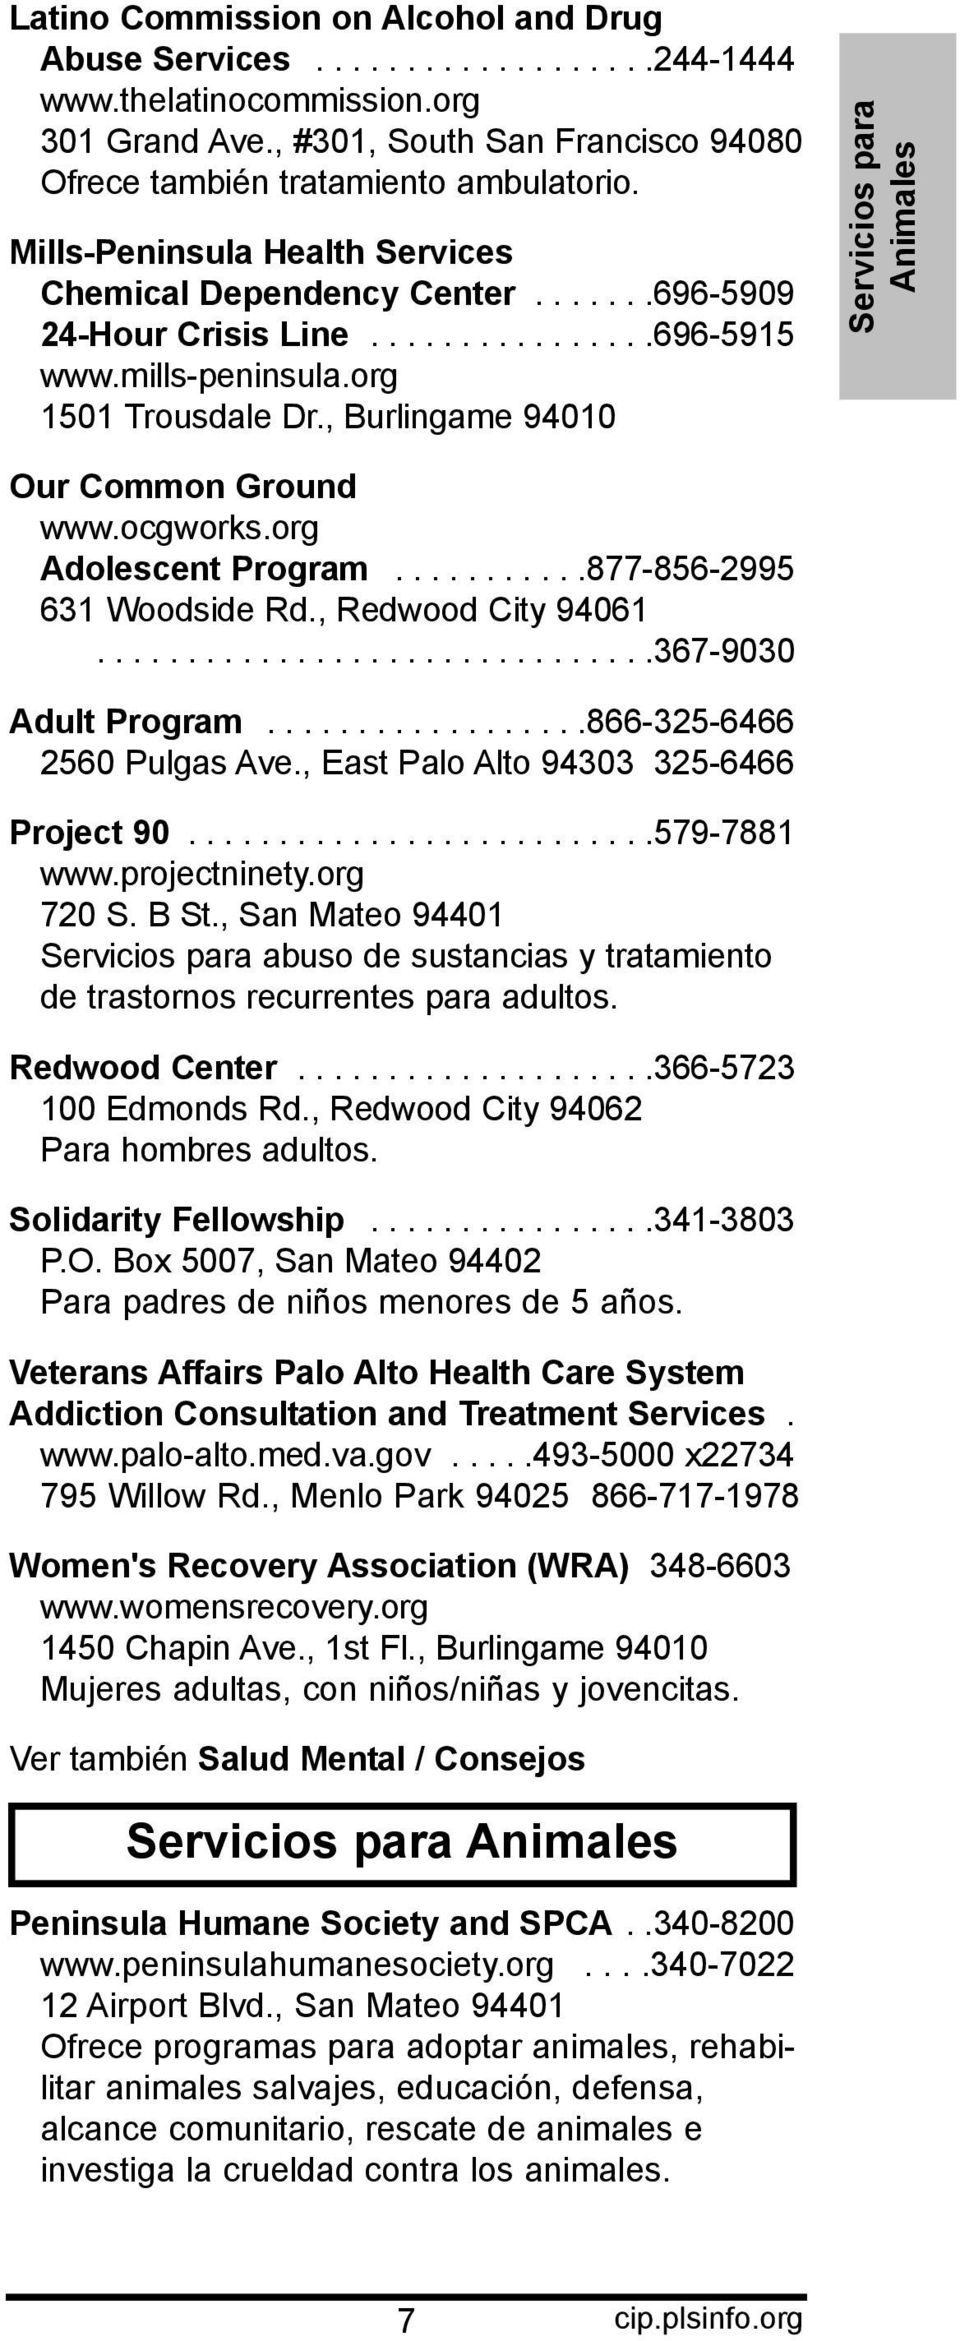 , Burlingame 94010 Servicios para Animales Our Common Ground www.ocgworks.org Adolescent Program...........877-856-2995 631 Woodside Rd., Redwood City 94061...............................367-9030 Adult Program.